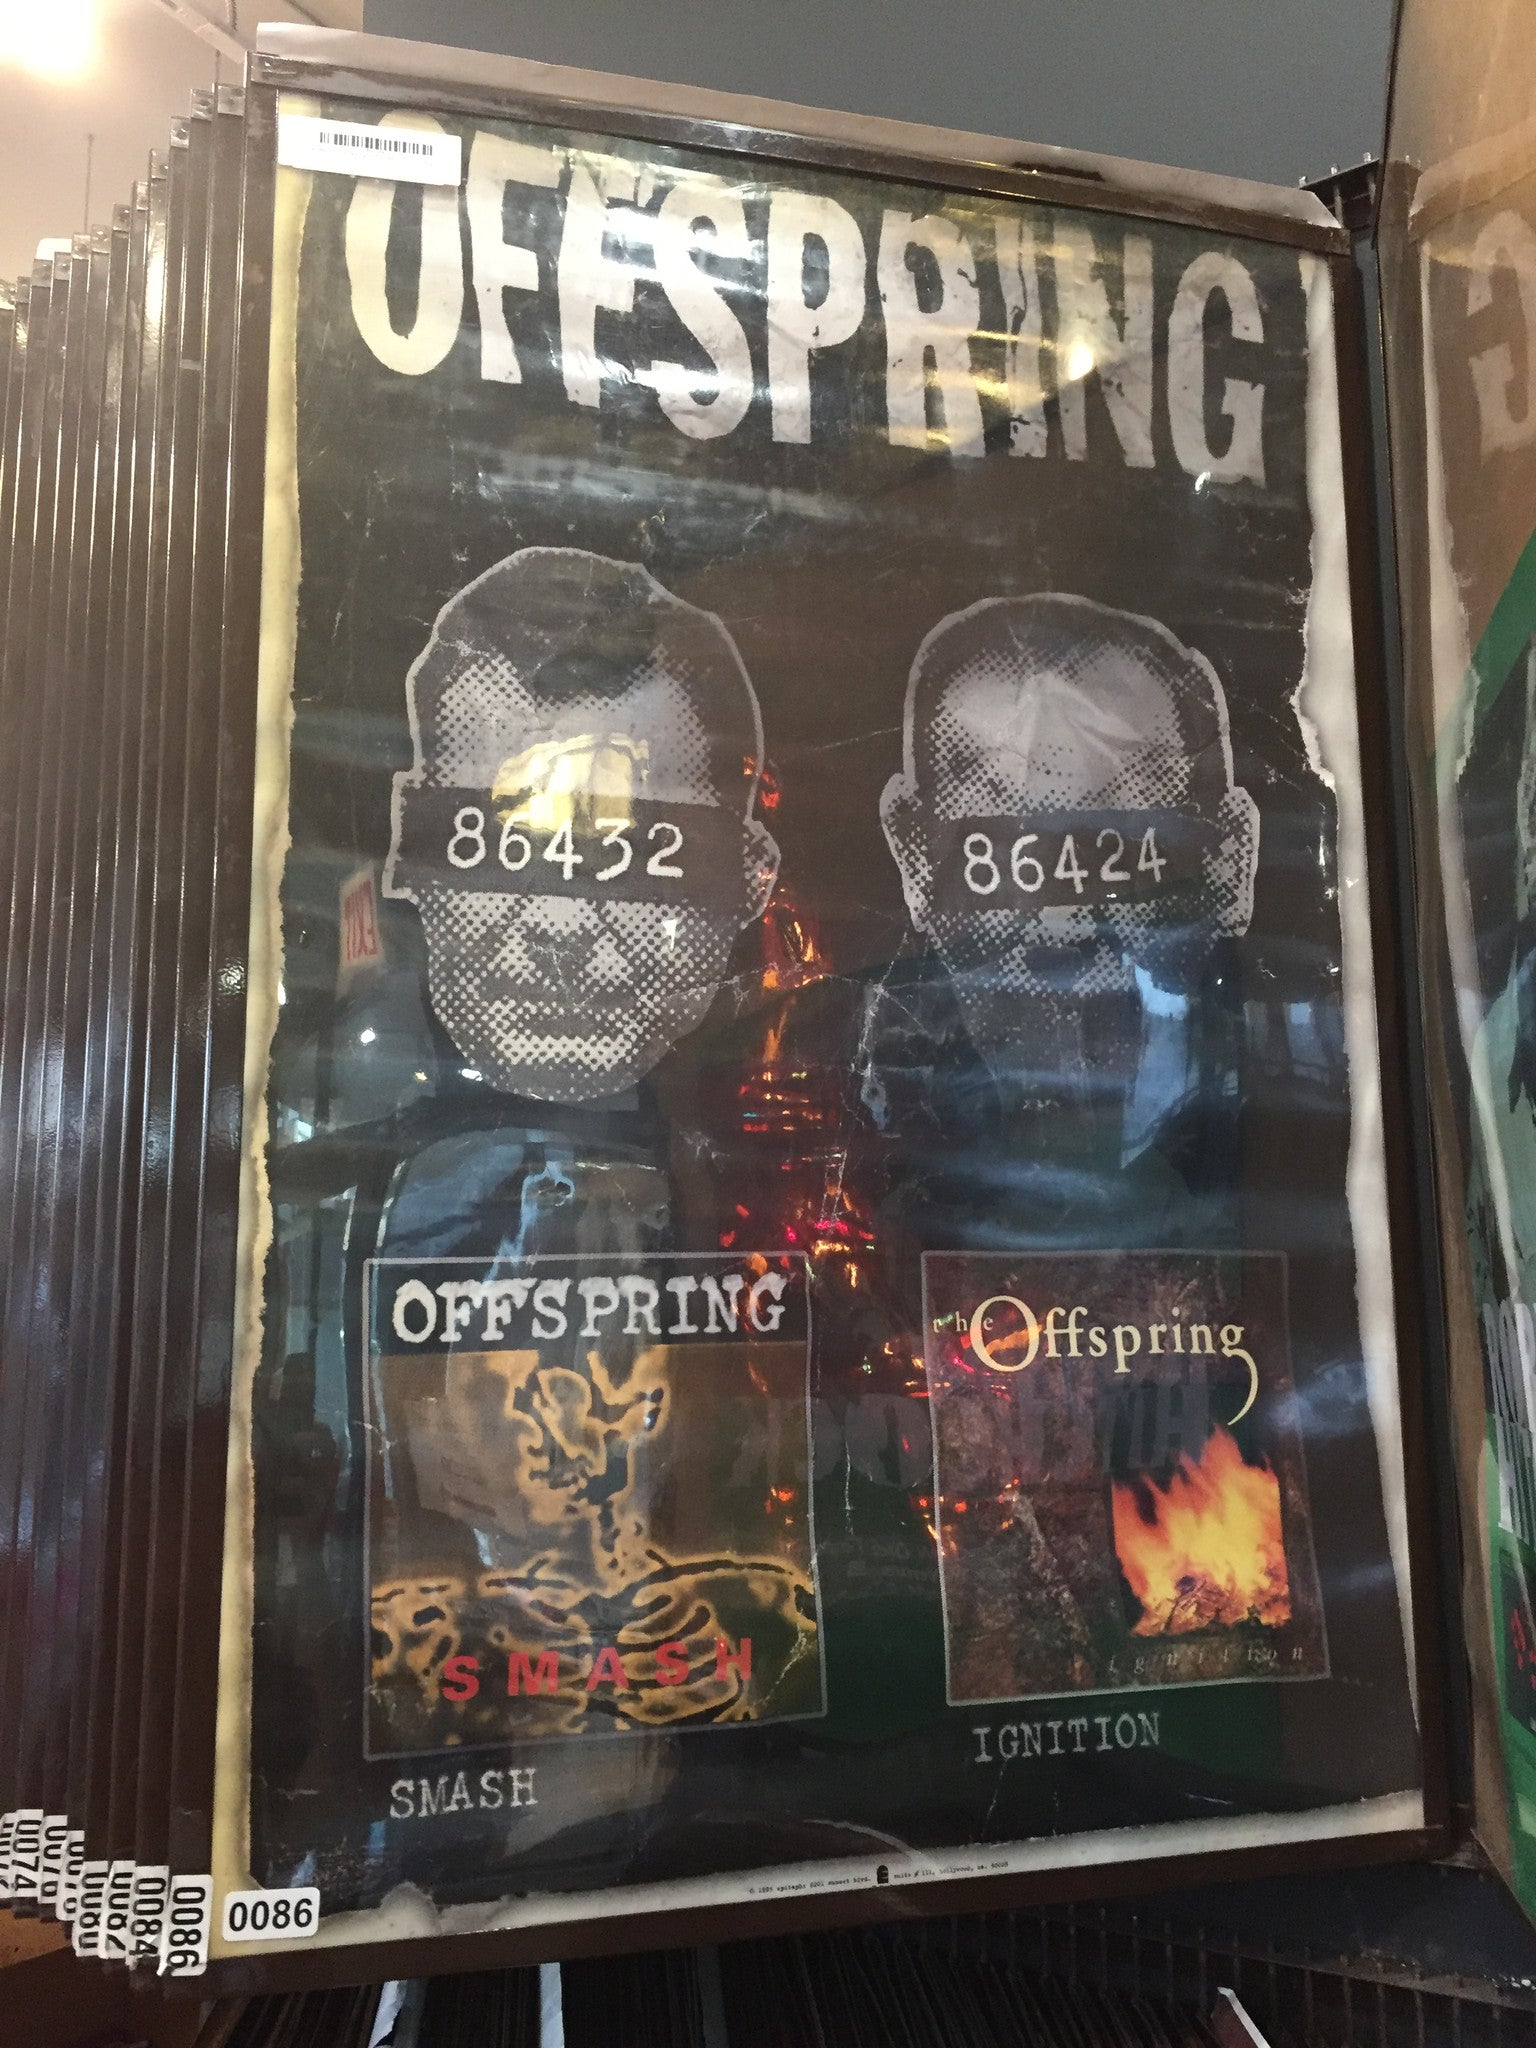 The Offspring – Smash/Ignition - 0086 Poster